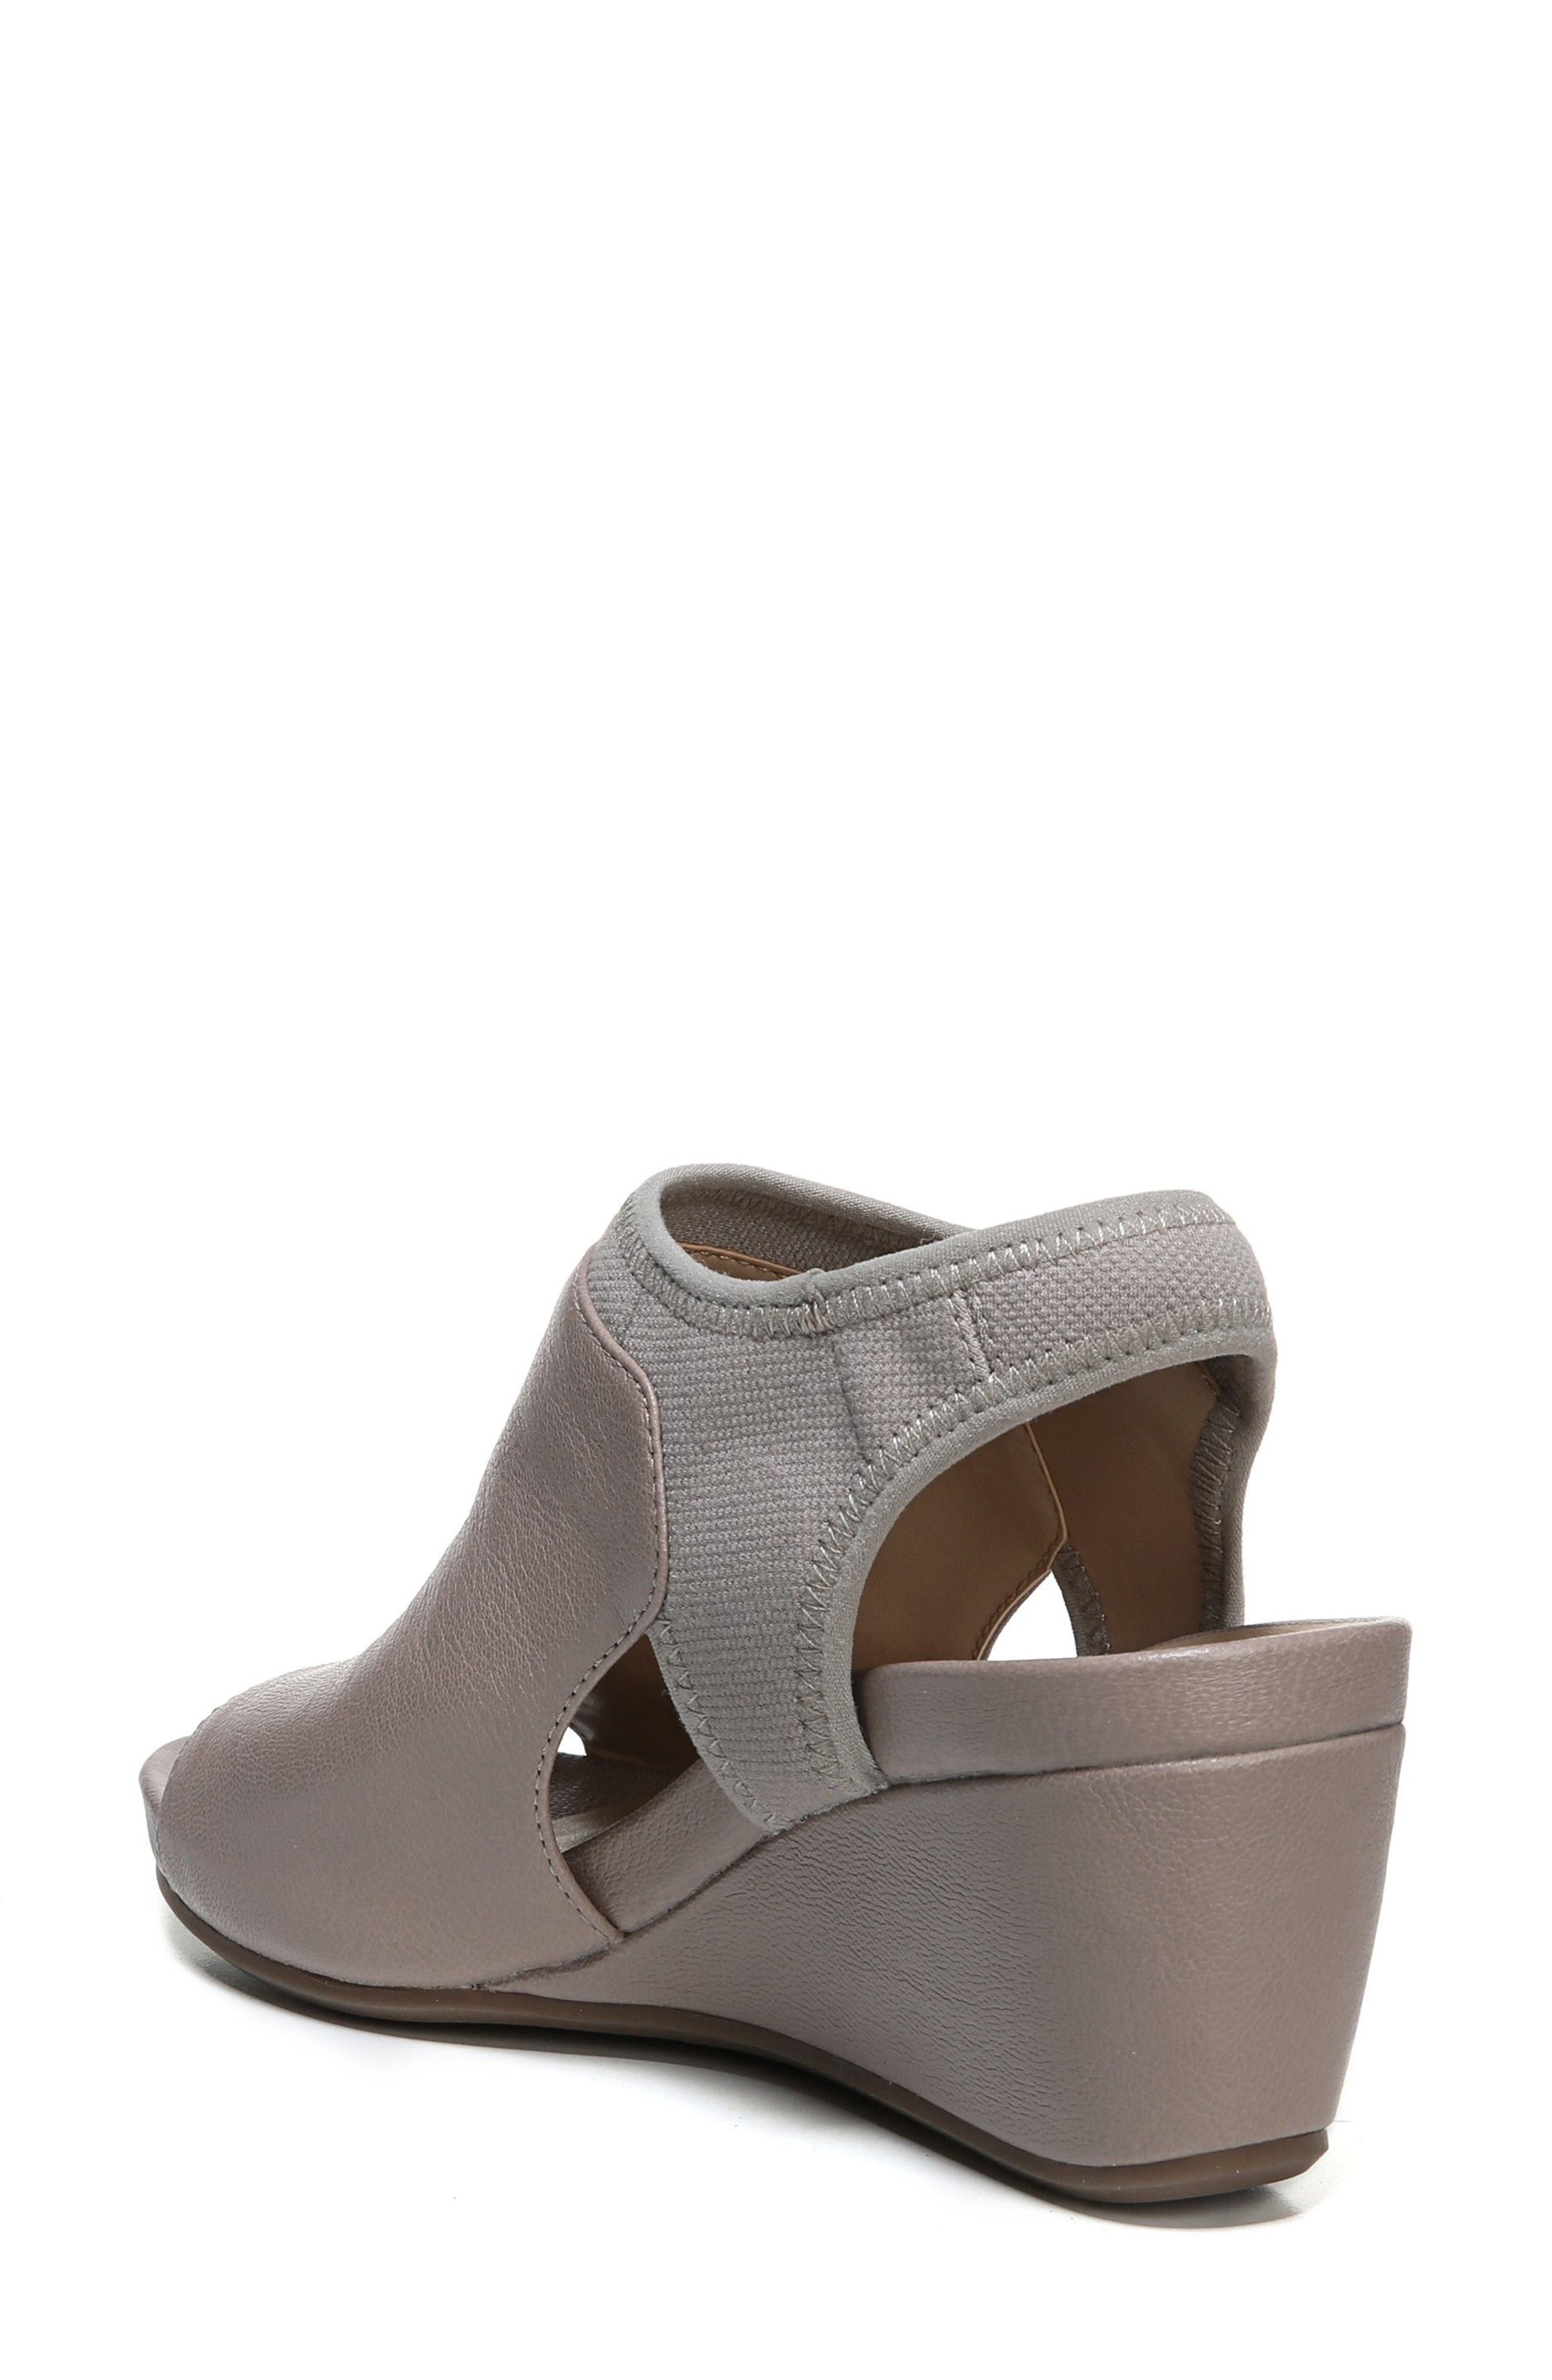 Cailla Shield Sandal,                             Alternate thumbnail 2, color,                             Grey Leather